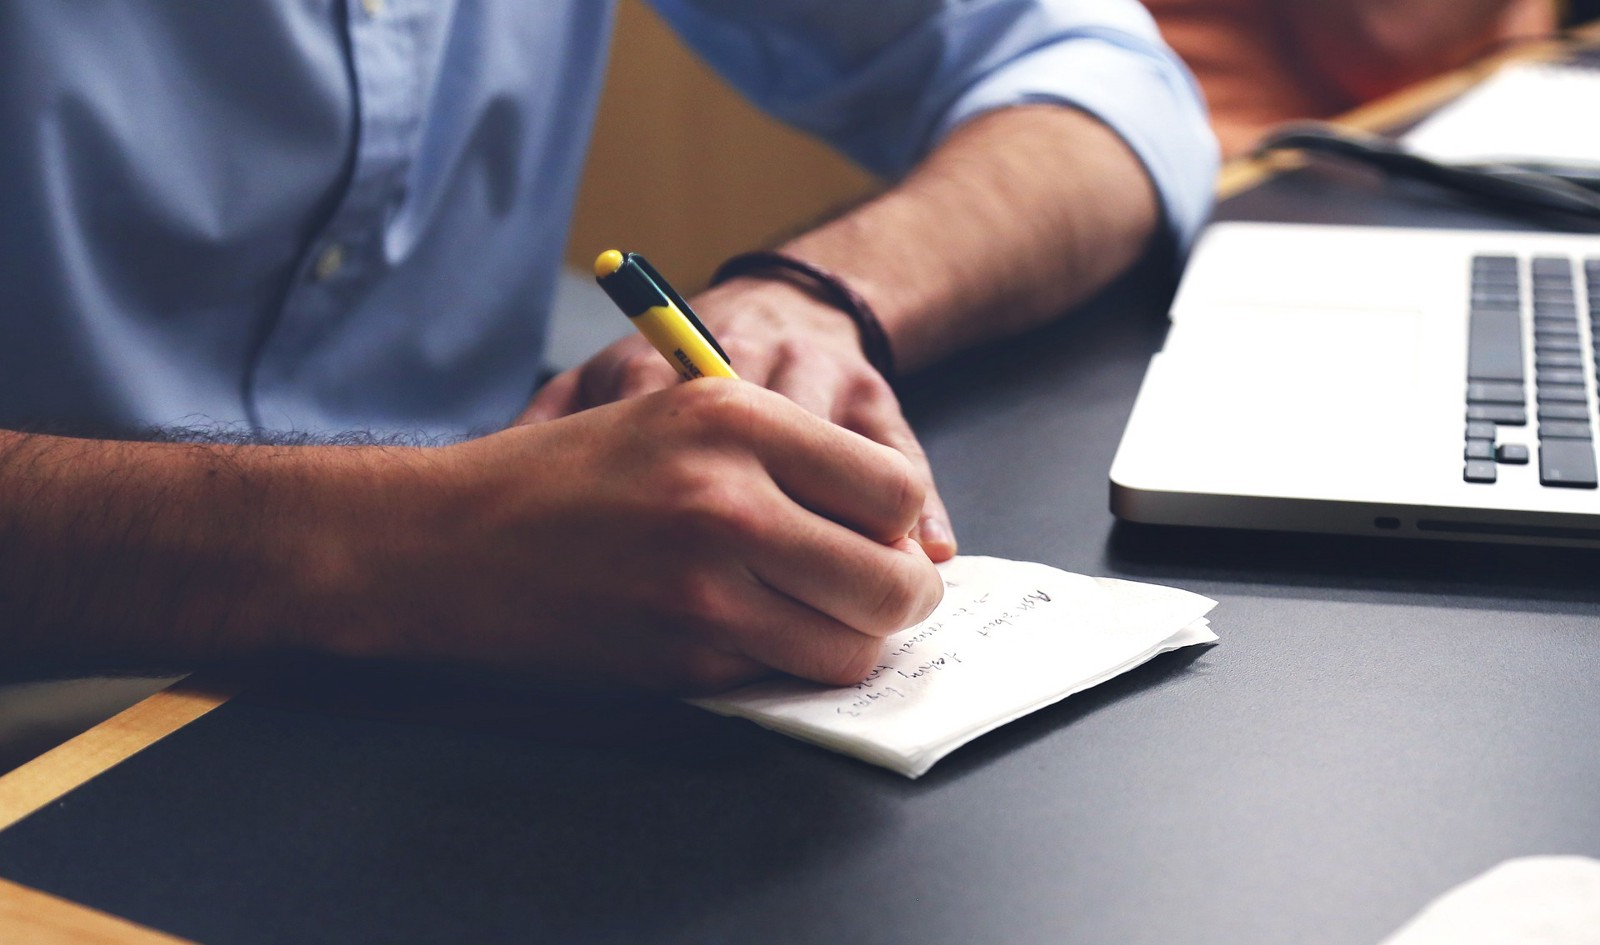 Free Writing: An effective solution to writers block